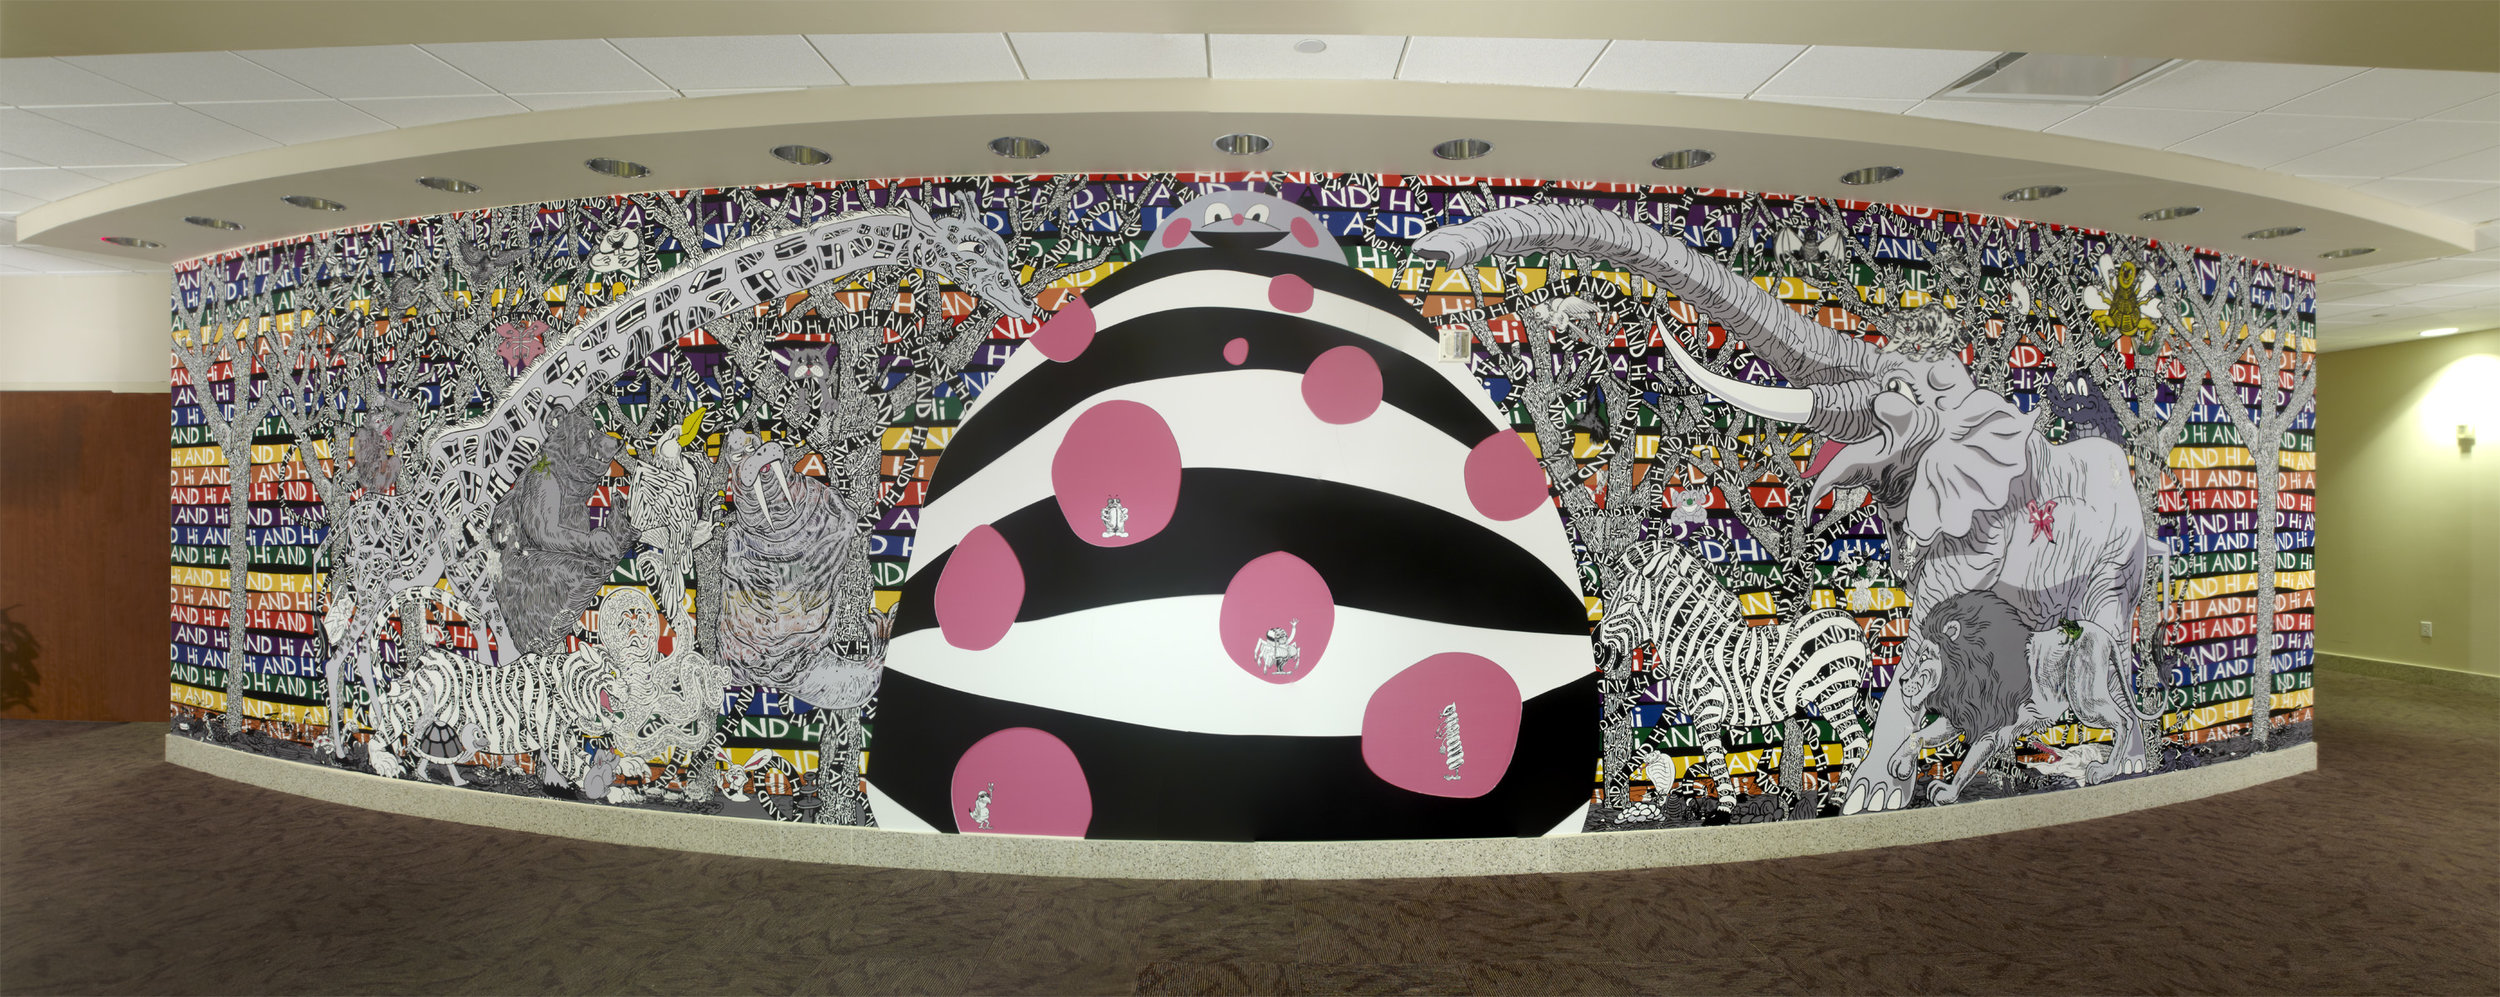 Trenton Doyle Hancock,  Hi and Hi , 2011, site-specific mural, approx. 8 x 39 ft. Children's Memorial Hermann Hospital. Photograph by Kara Trail